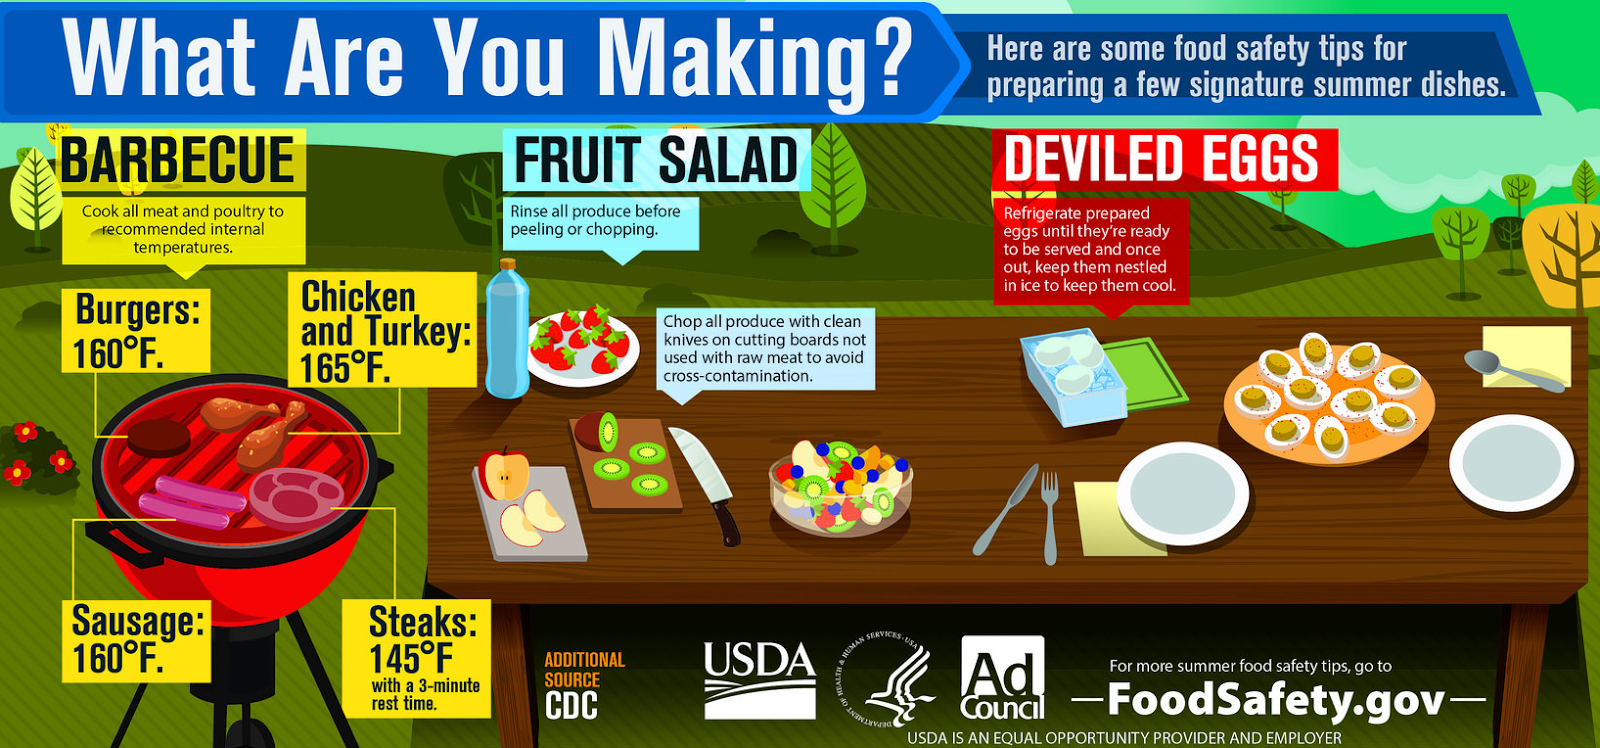 Experts Offer Food Safety Tips For Summer Eating